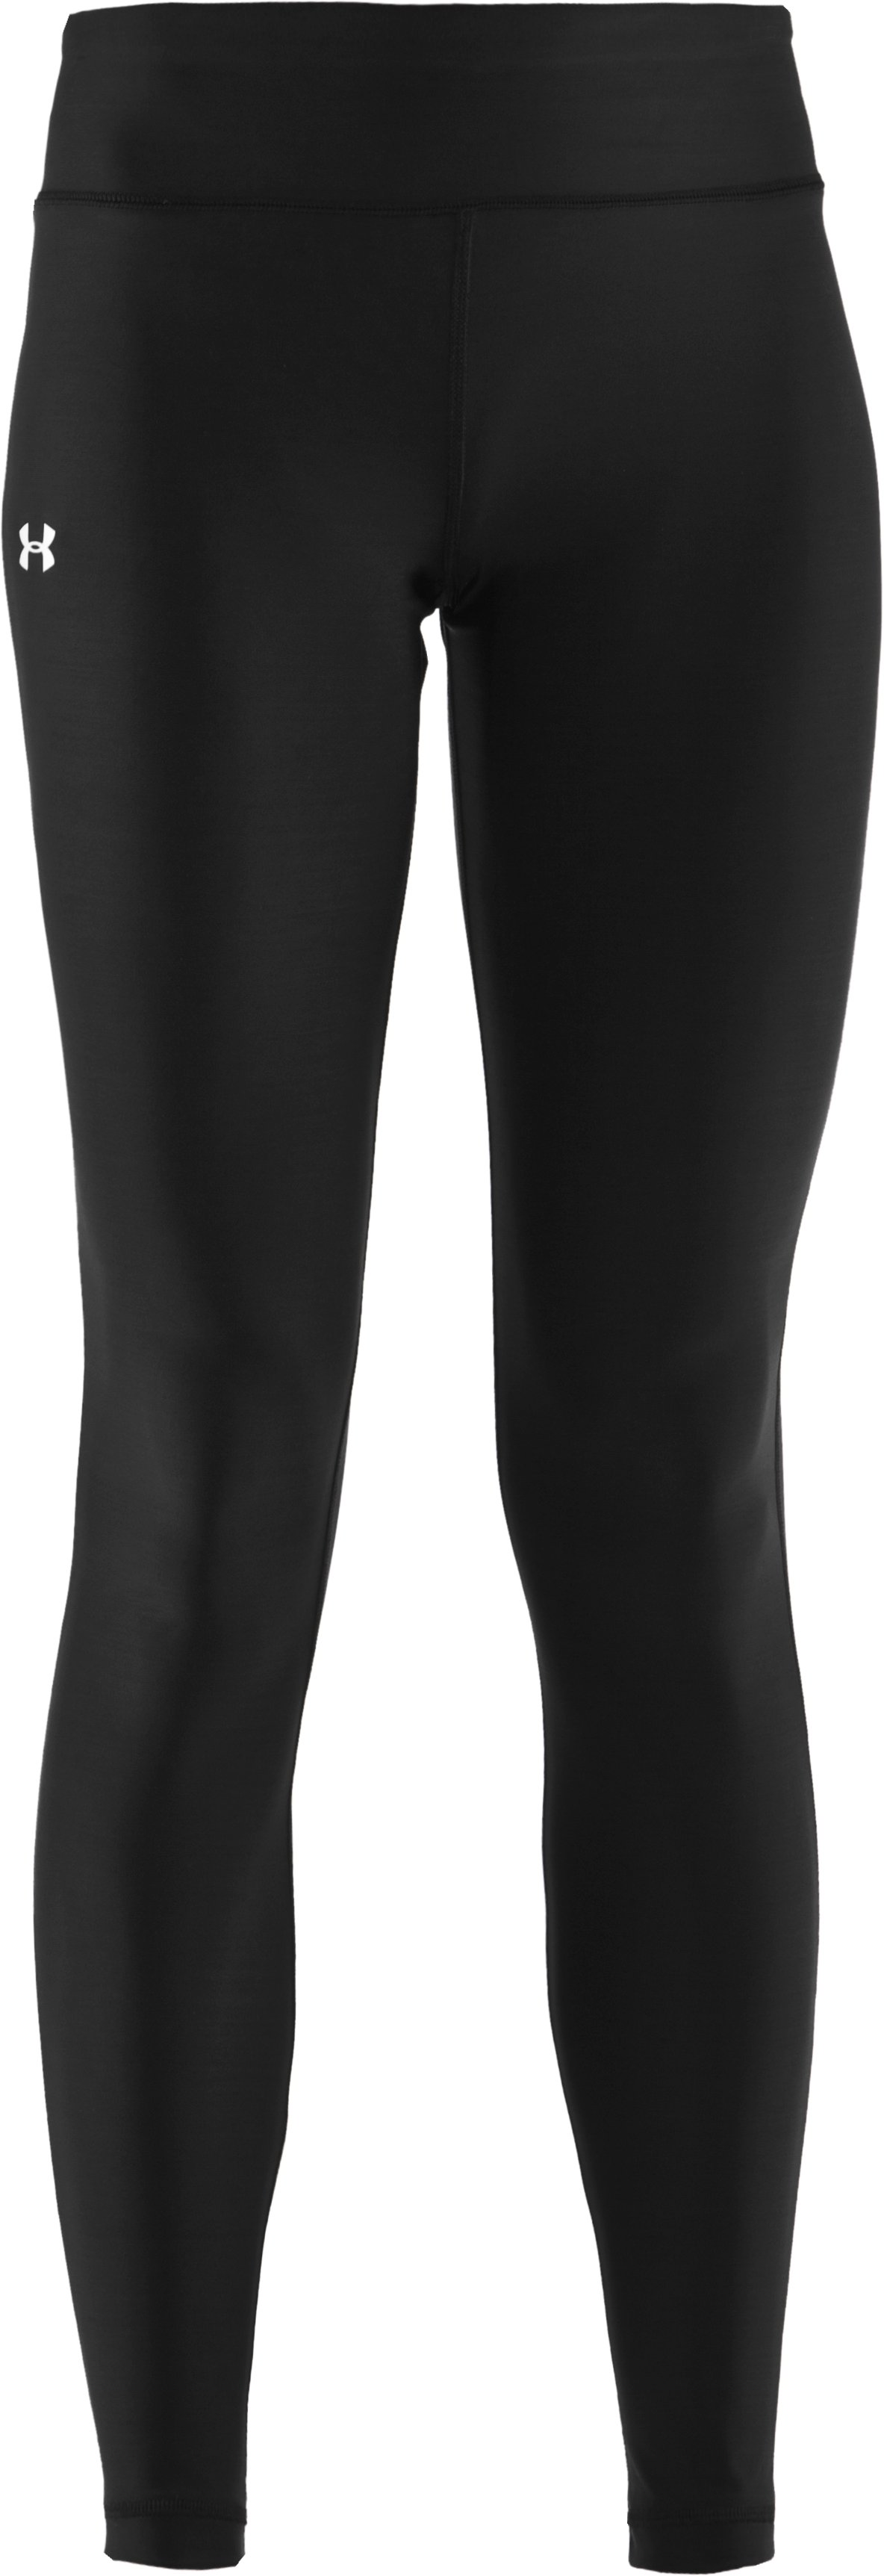 Women's UA Leg Press Tights, Black